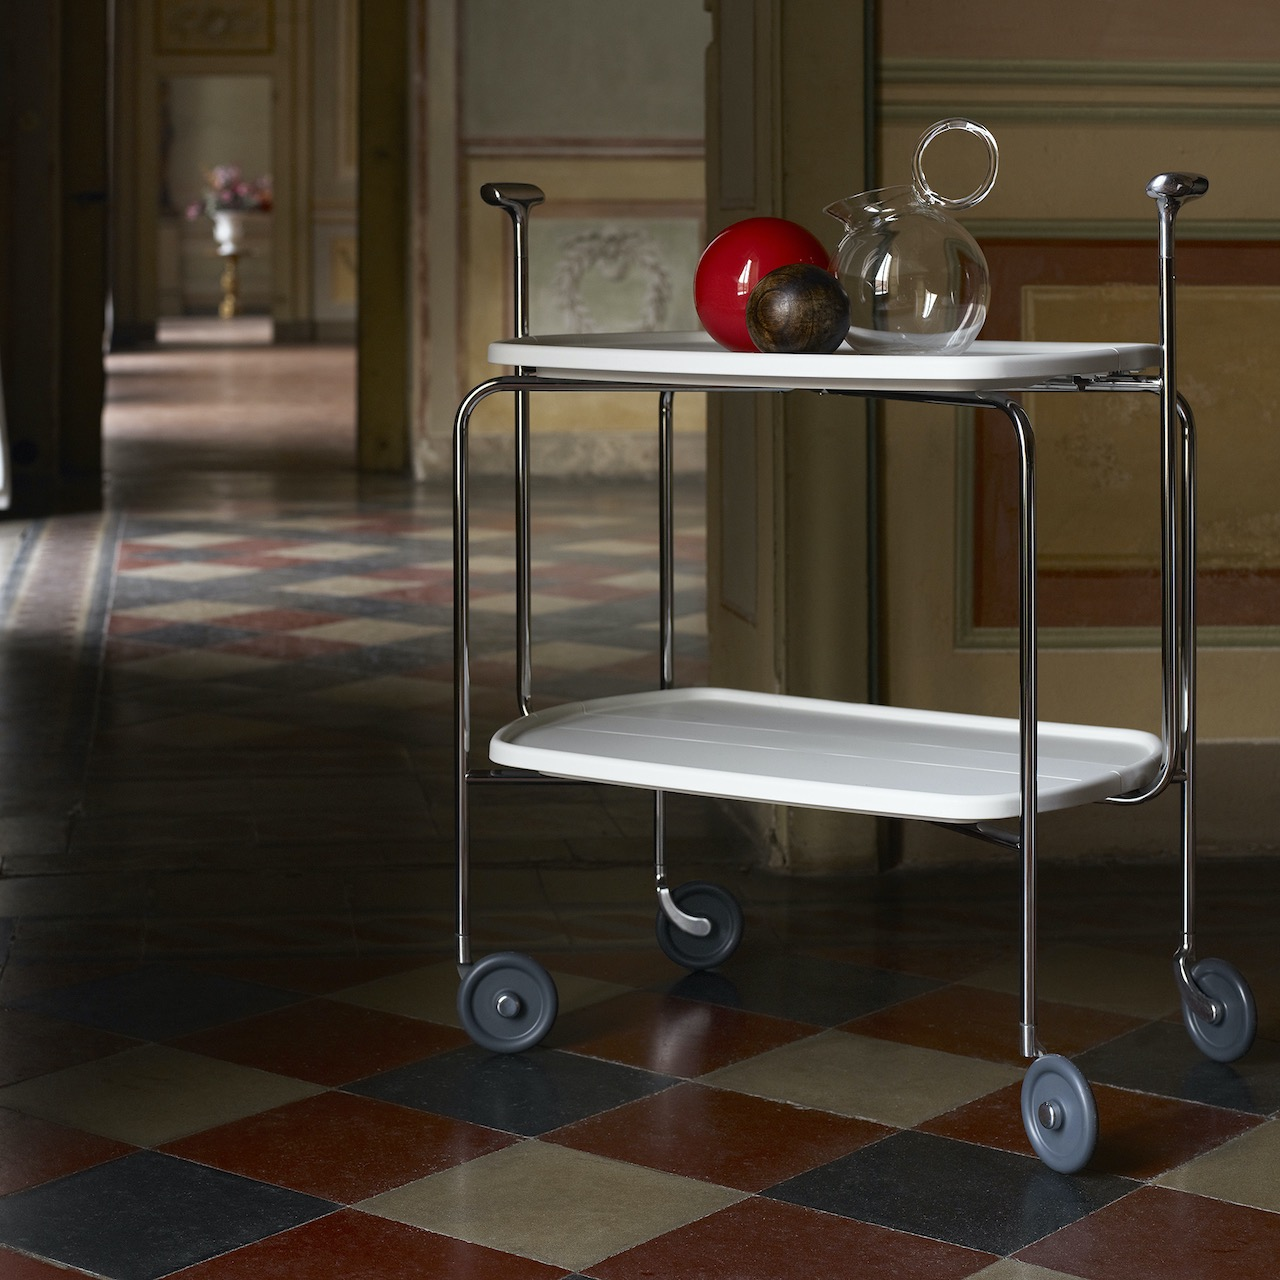 Carrello Transit, design David Mellor 1998, Magis